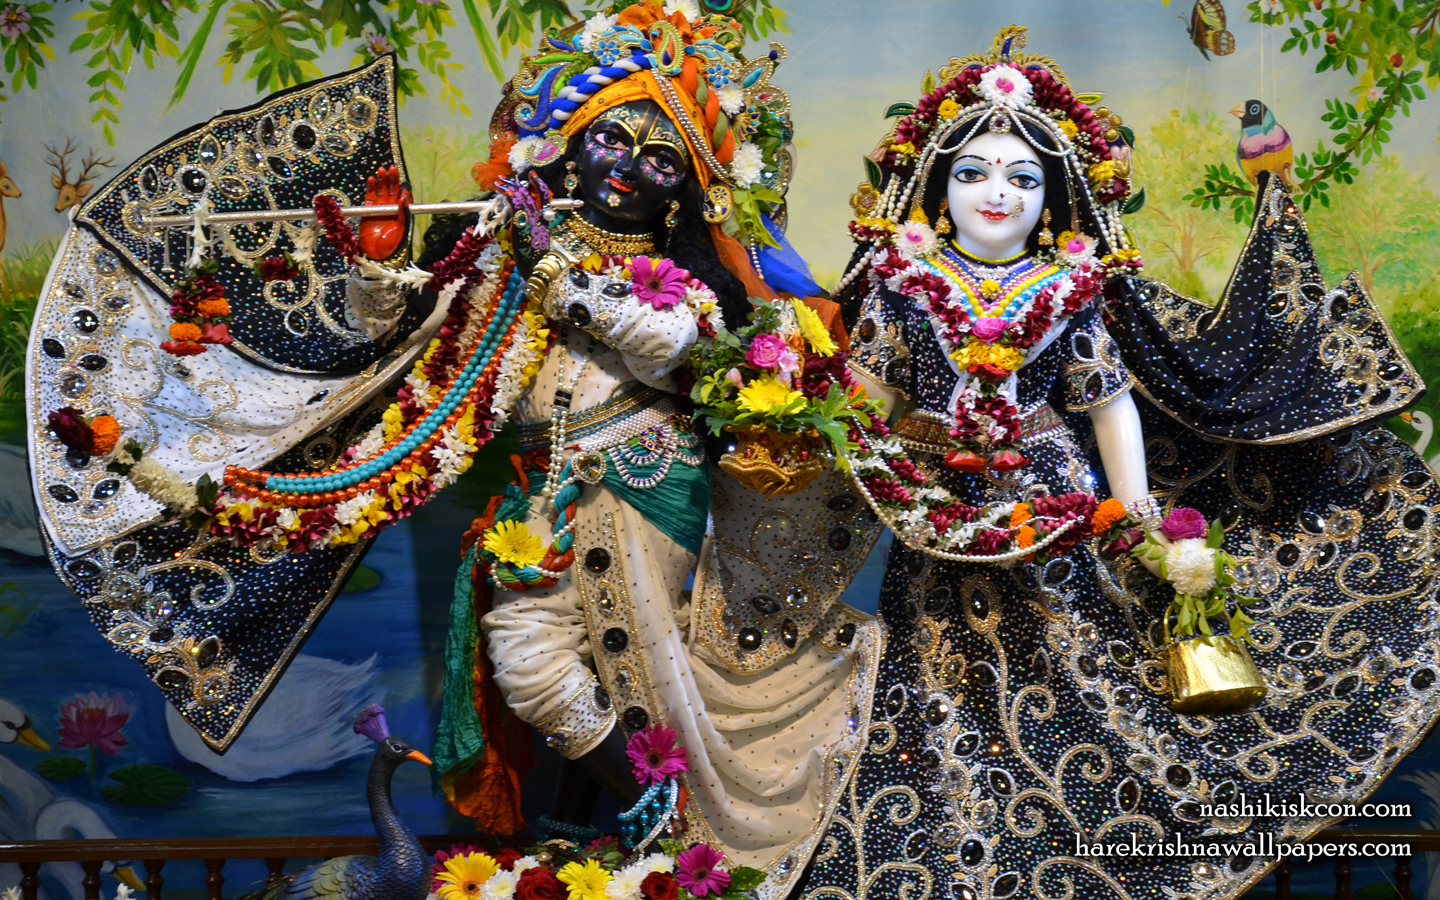 Sri Sri Radha Madan Gopal Wallpaper (012) Size 1440x900 Download